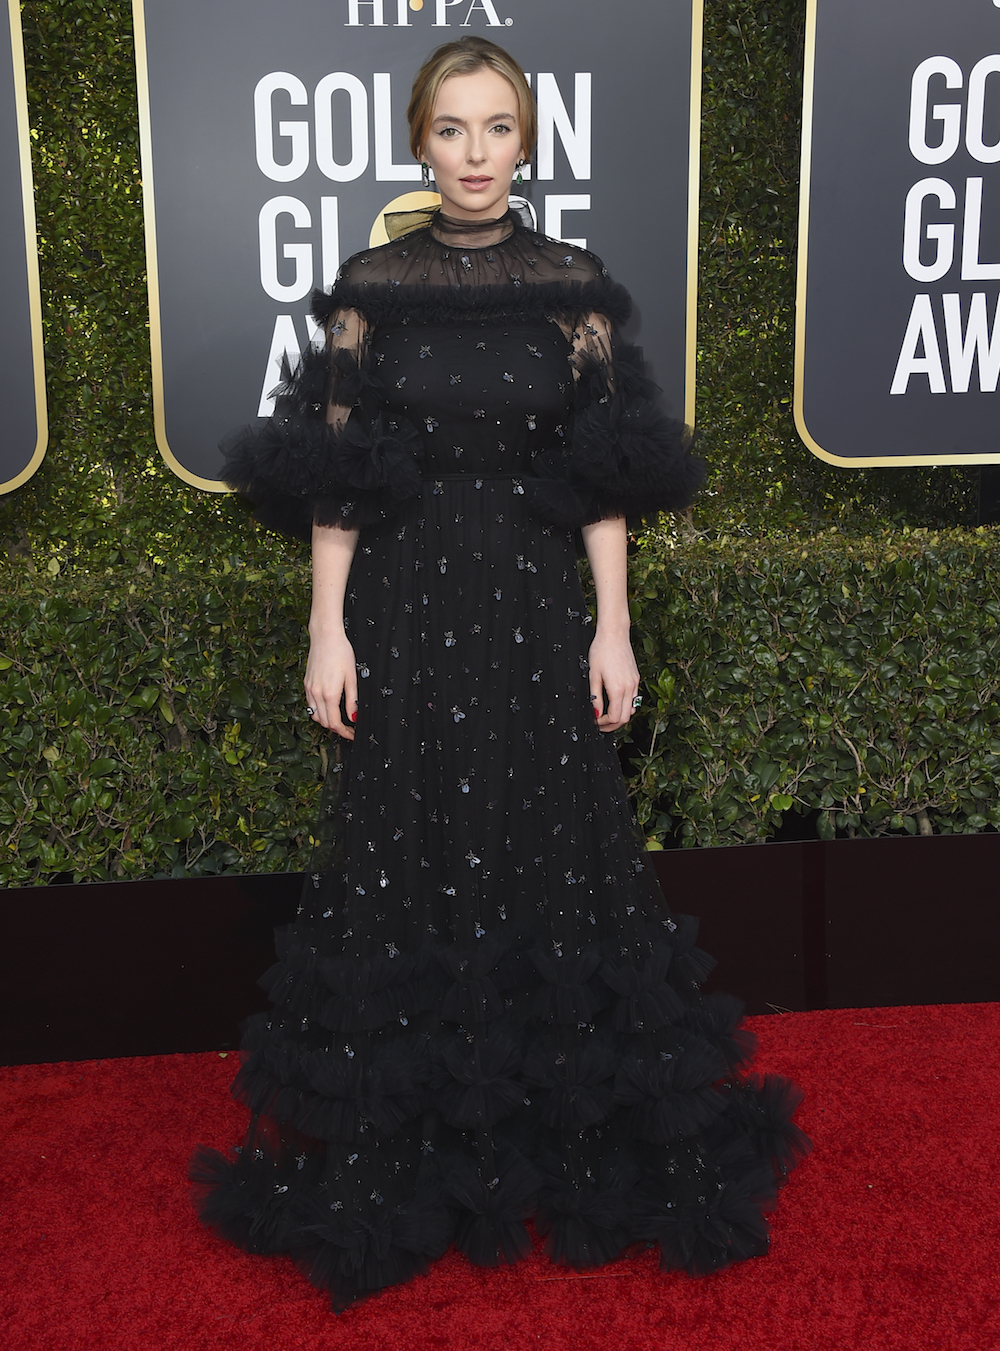 <div class='meta'><div class='origin-logo' data-origin='AP'></div><span class='caption-text' data-credit='Invision'>Jodie Comer arrives at the 76th annual Golden Globe Awards at the Beverly Hilton Hotel on Sunday, Jan. 6, 2019, in Beverly Hills, Calif.</span></div>